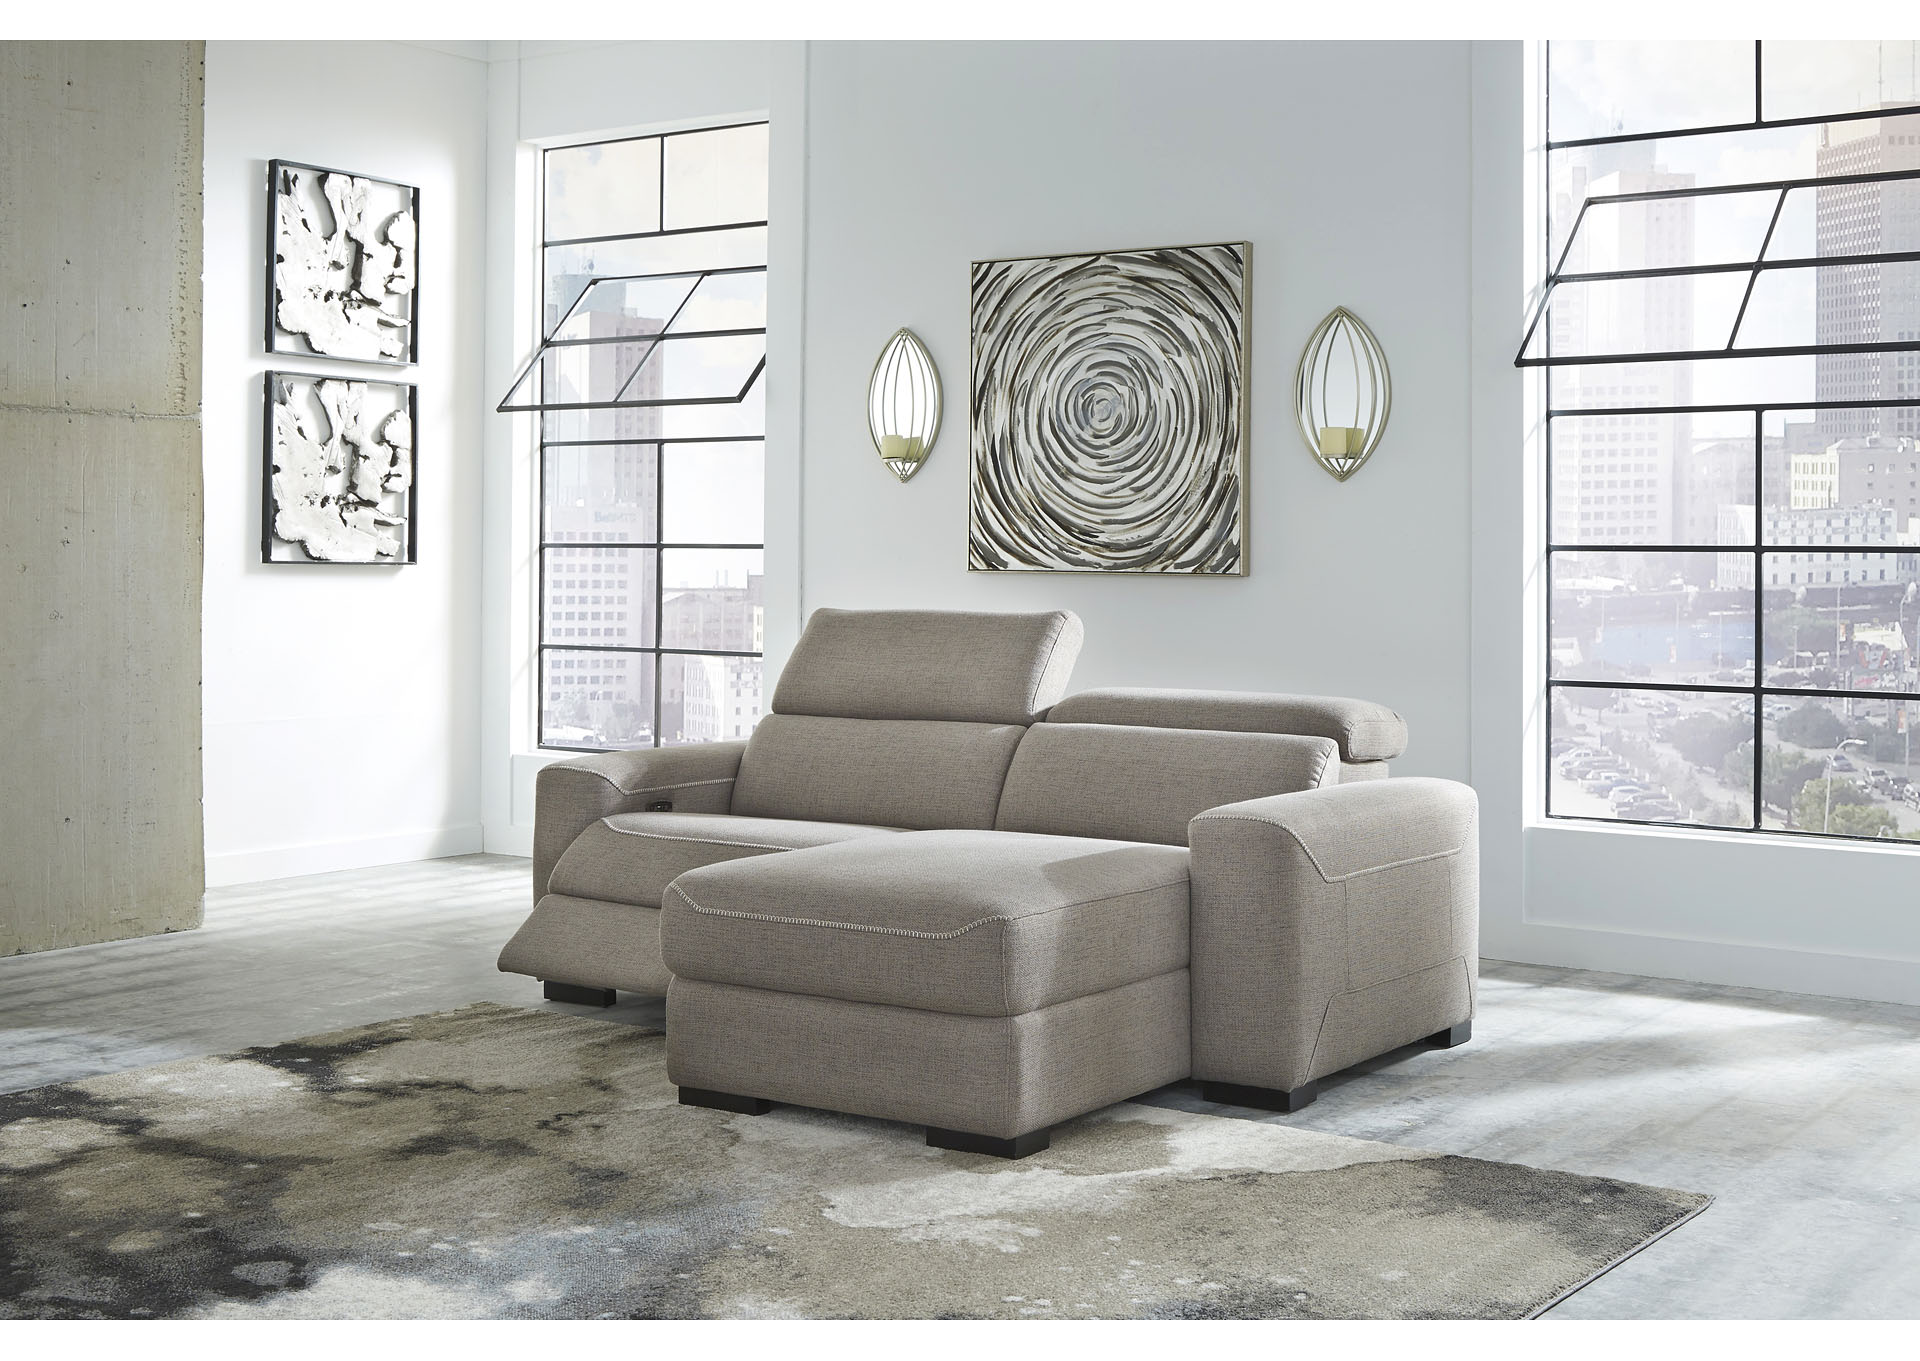 Mabton Gray Right-Arm Facing Power Reclining 2 Piece Sectional Chaise,Signature Design By Ashley